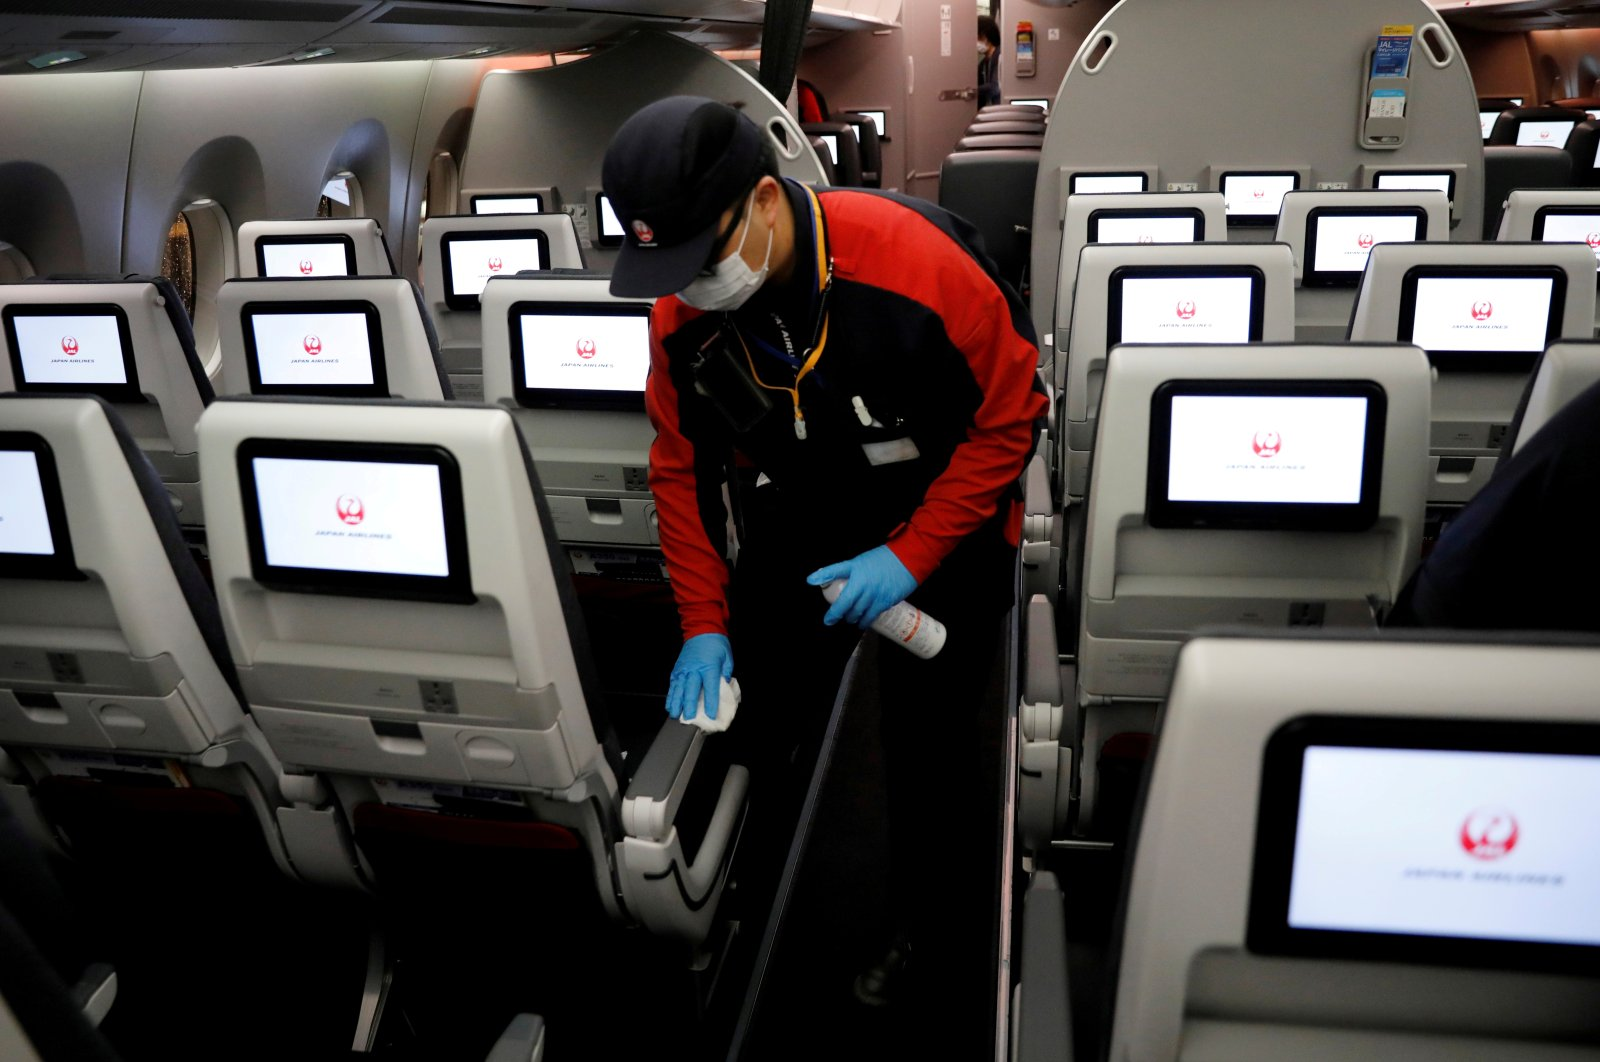 A staff member of Japan Airlines wearing a protective face mask and gloves cleans the cabin of a plane after performing a domestic flight as passengers disembarked at Haneda airport on the first day after the Japanese government lifted the state of emergency, Tokyo, Japan, May 26, 2020. (Reuters Photo)